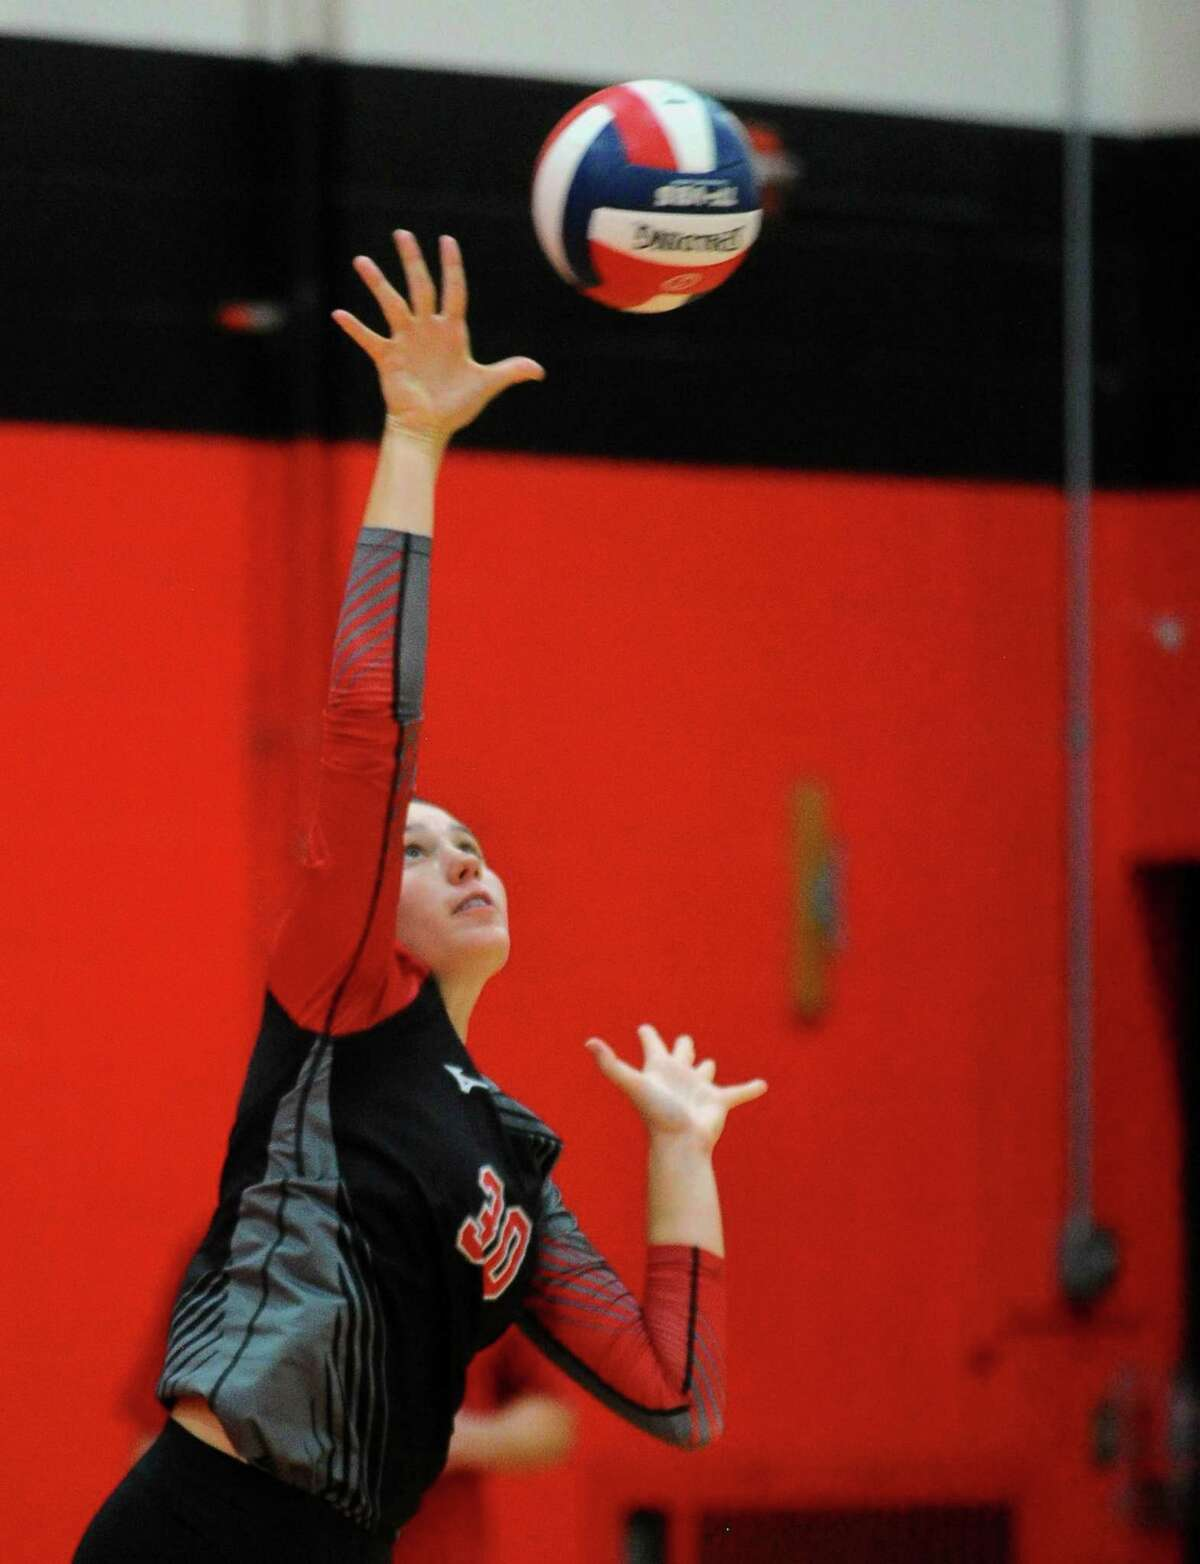 Cheshire's Lindsey Abramson serves the ball during girls volleyball action against Amity in Cheshire, Conn., on Thursday Sept. 19, 2019.